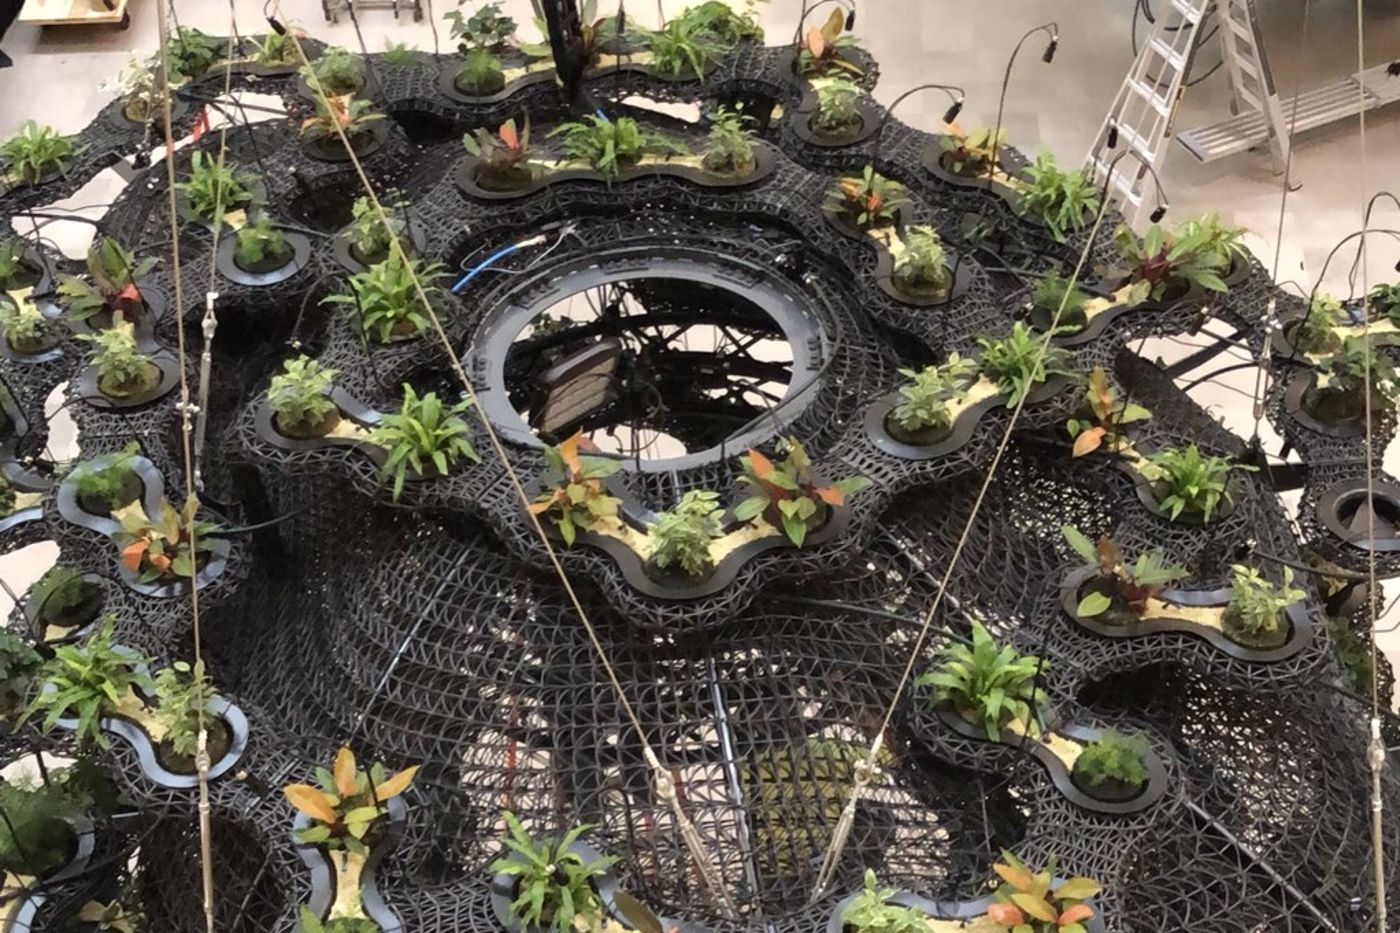 Looking from above on an abstract black plastic structure holding numerous plants and suspended from wires.